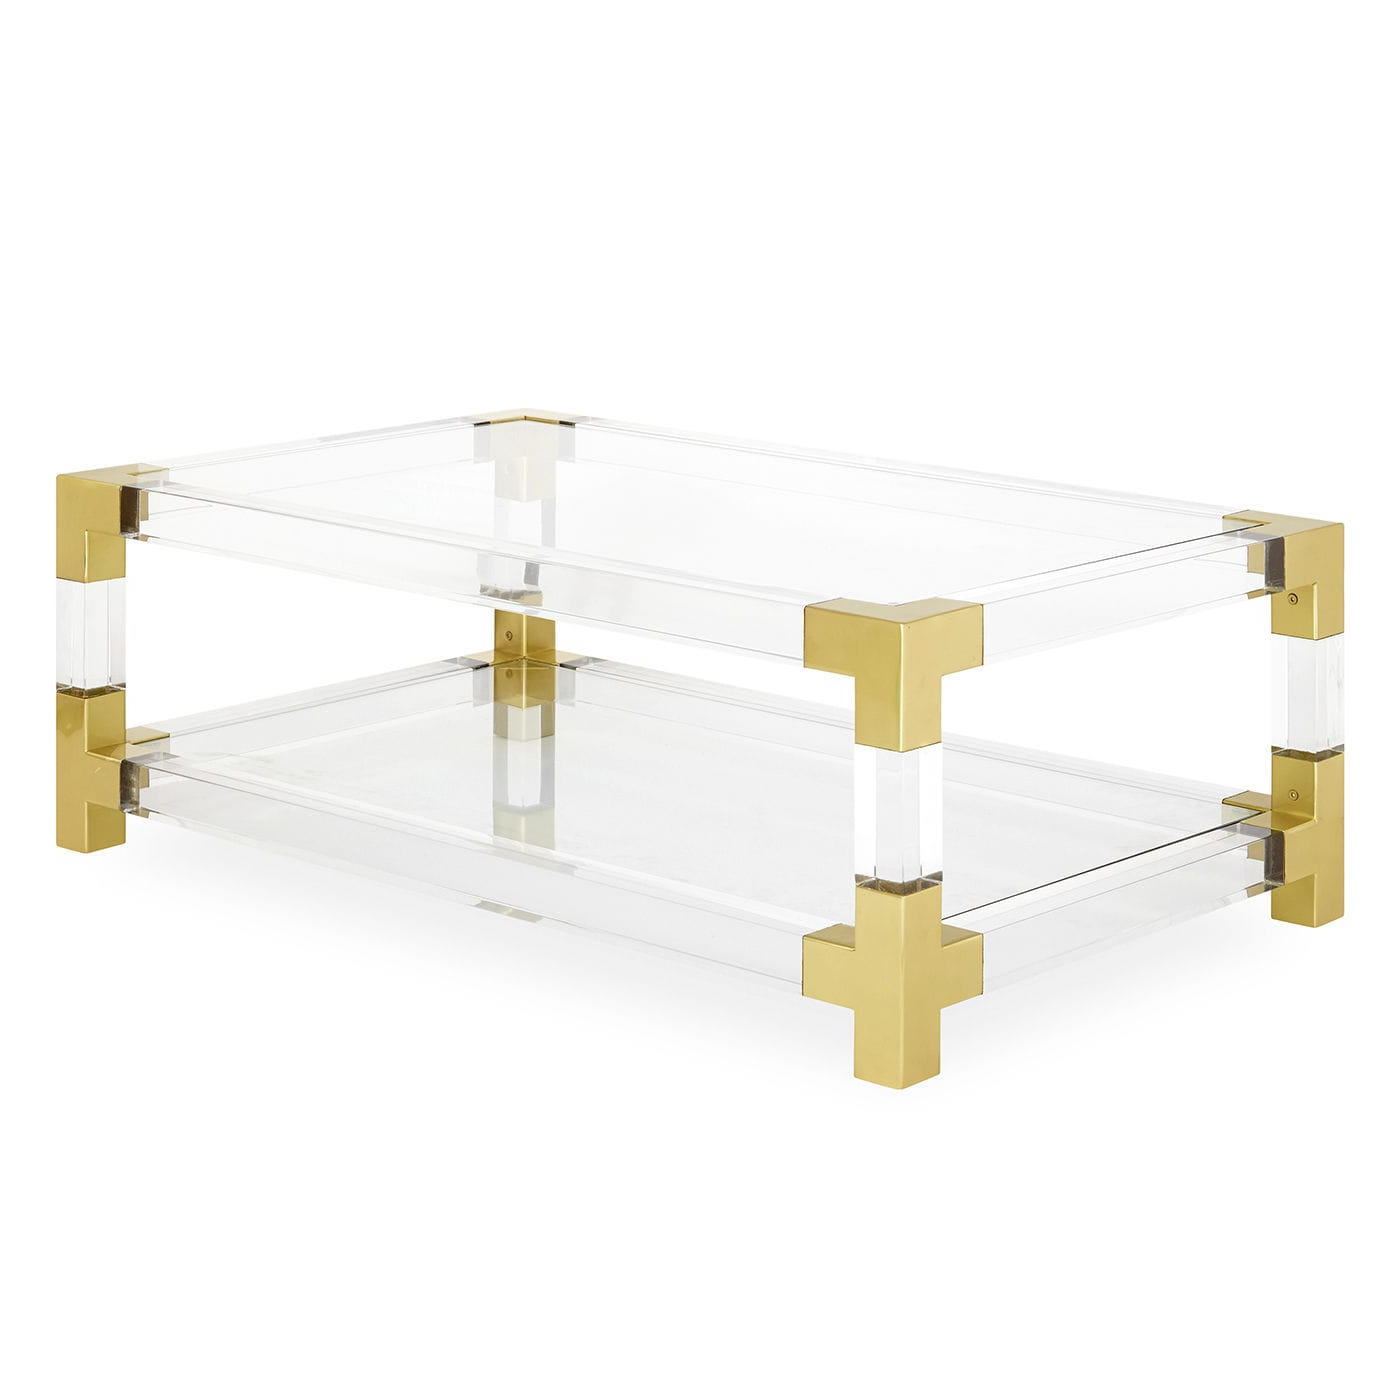 Current Acrylic & Brushed Brass Coffee Tables Within Contemporary Coffee Table / Glass / Brushed Brass / Acrylic (View 6 of 20)